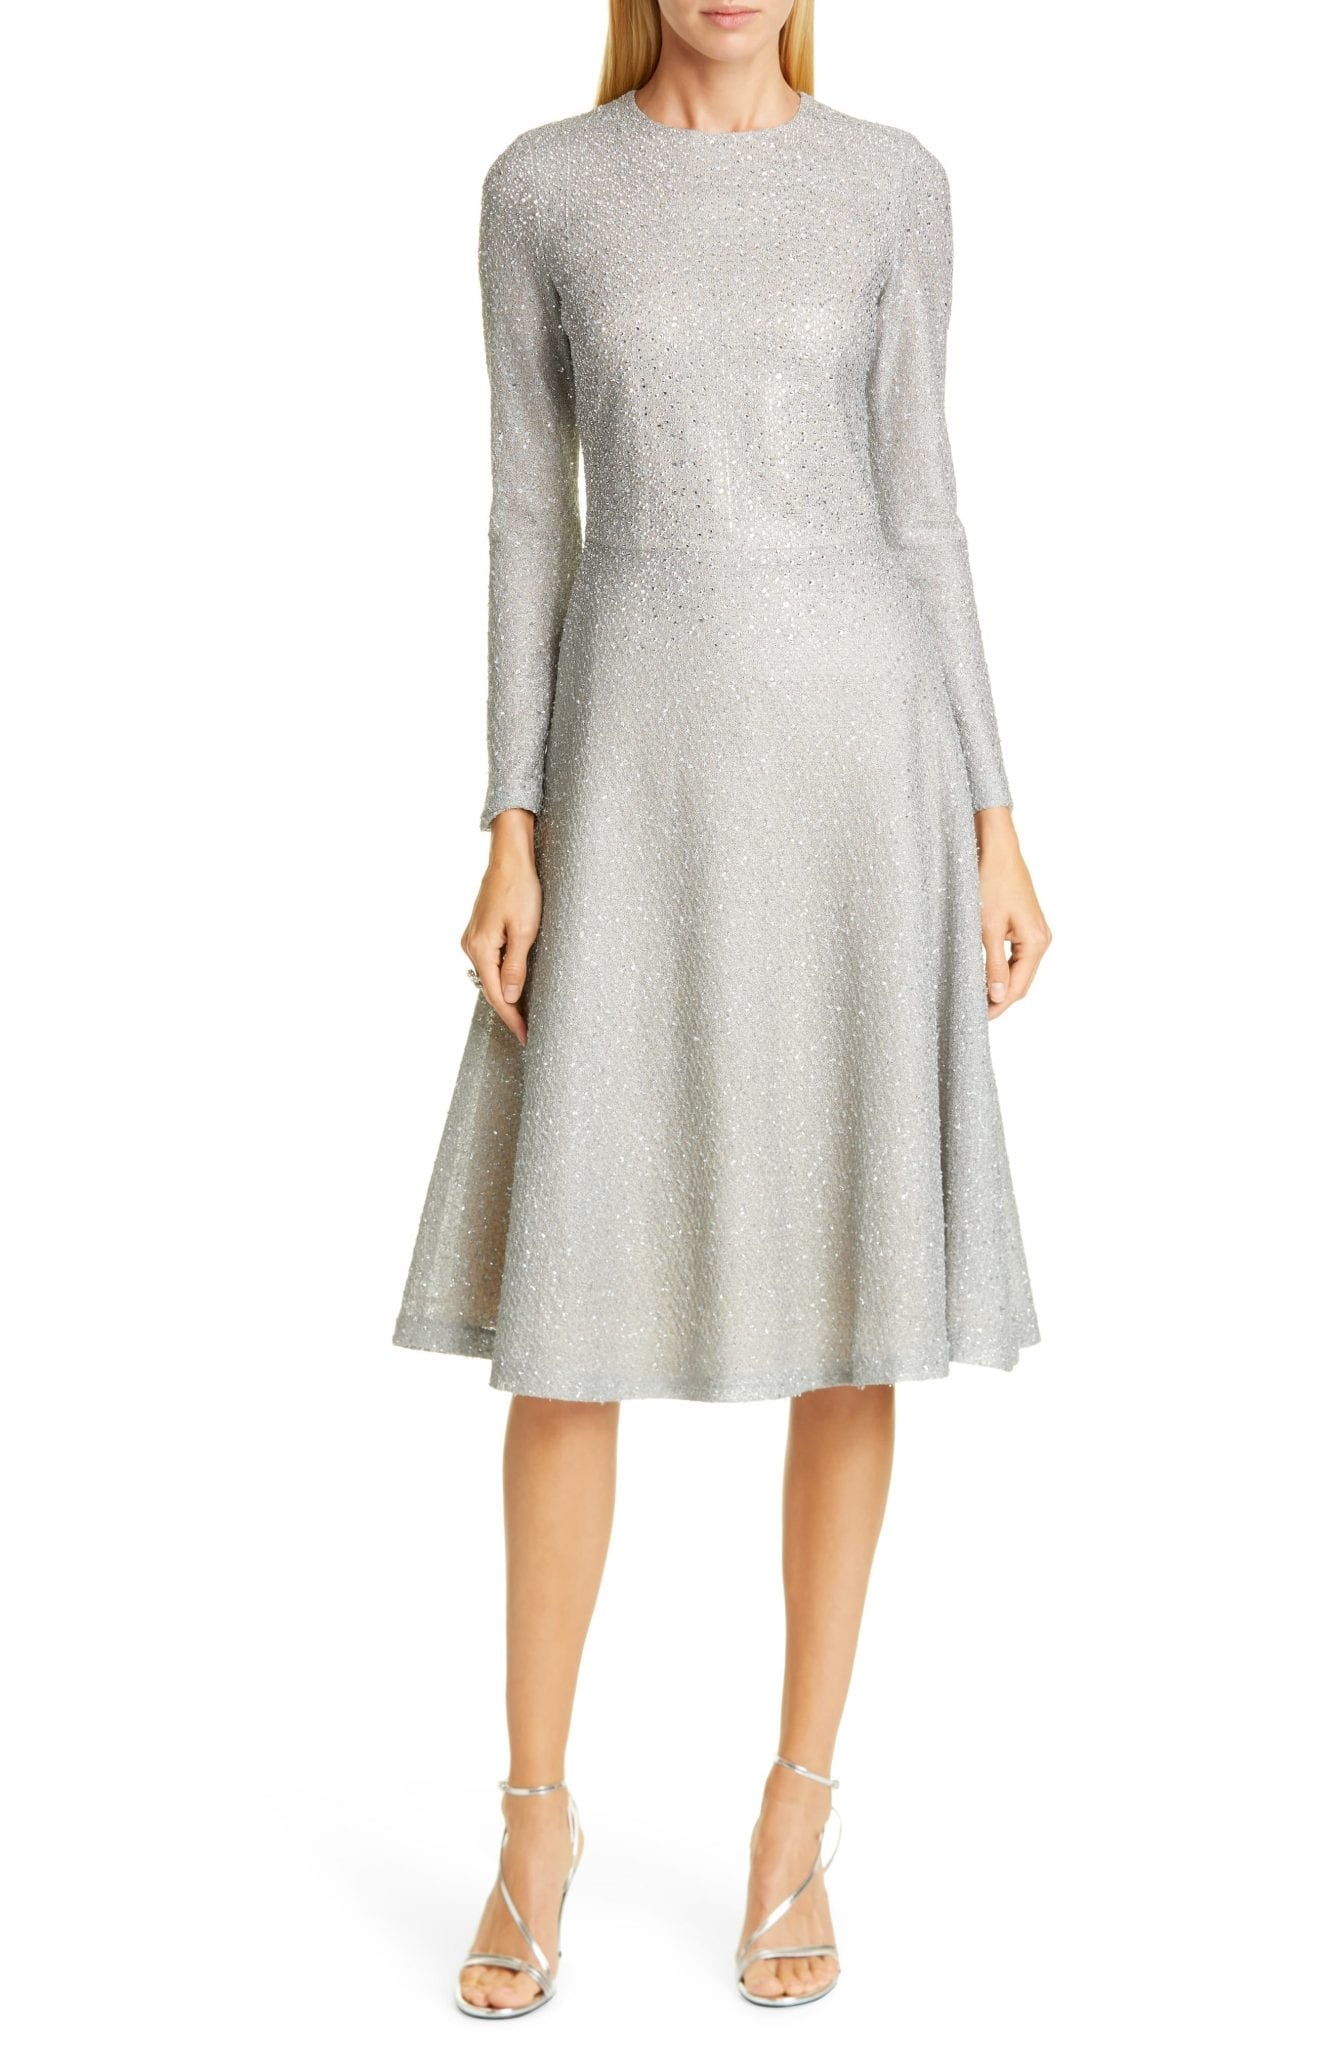 ST. JOHN EVENING Embellished Netting Knit Fit & Flare Dress